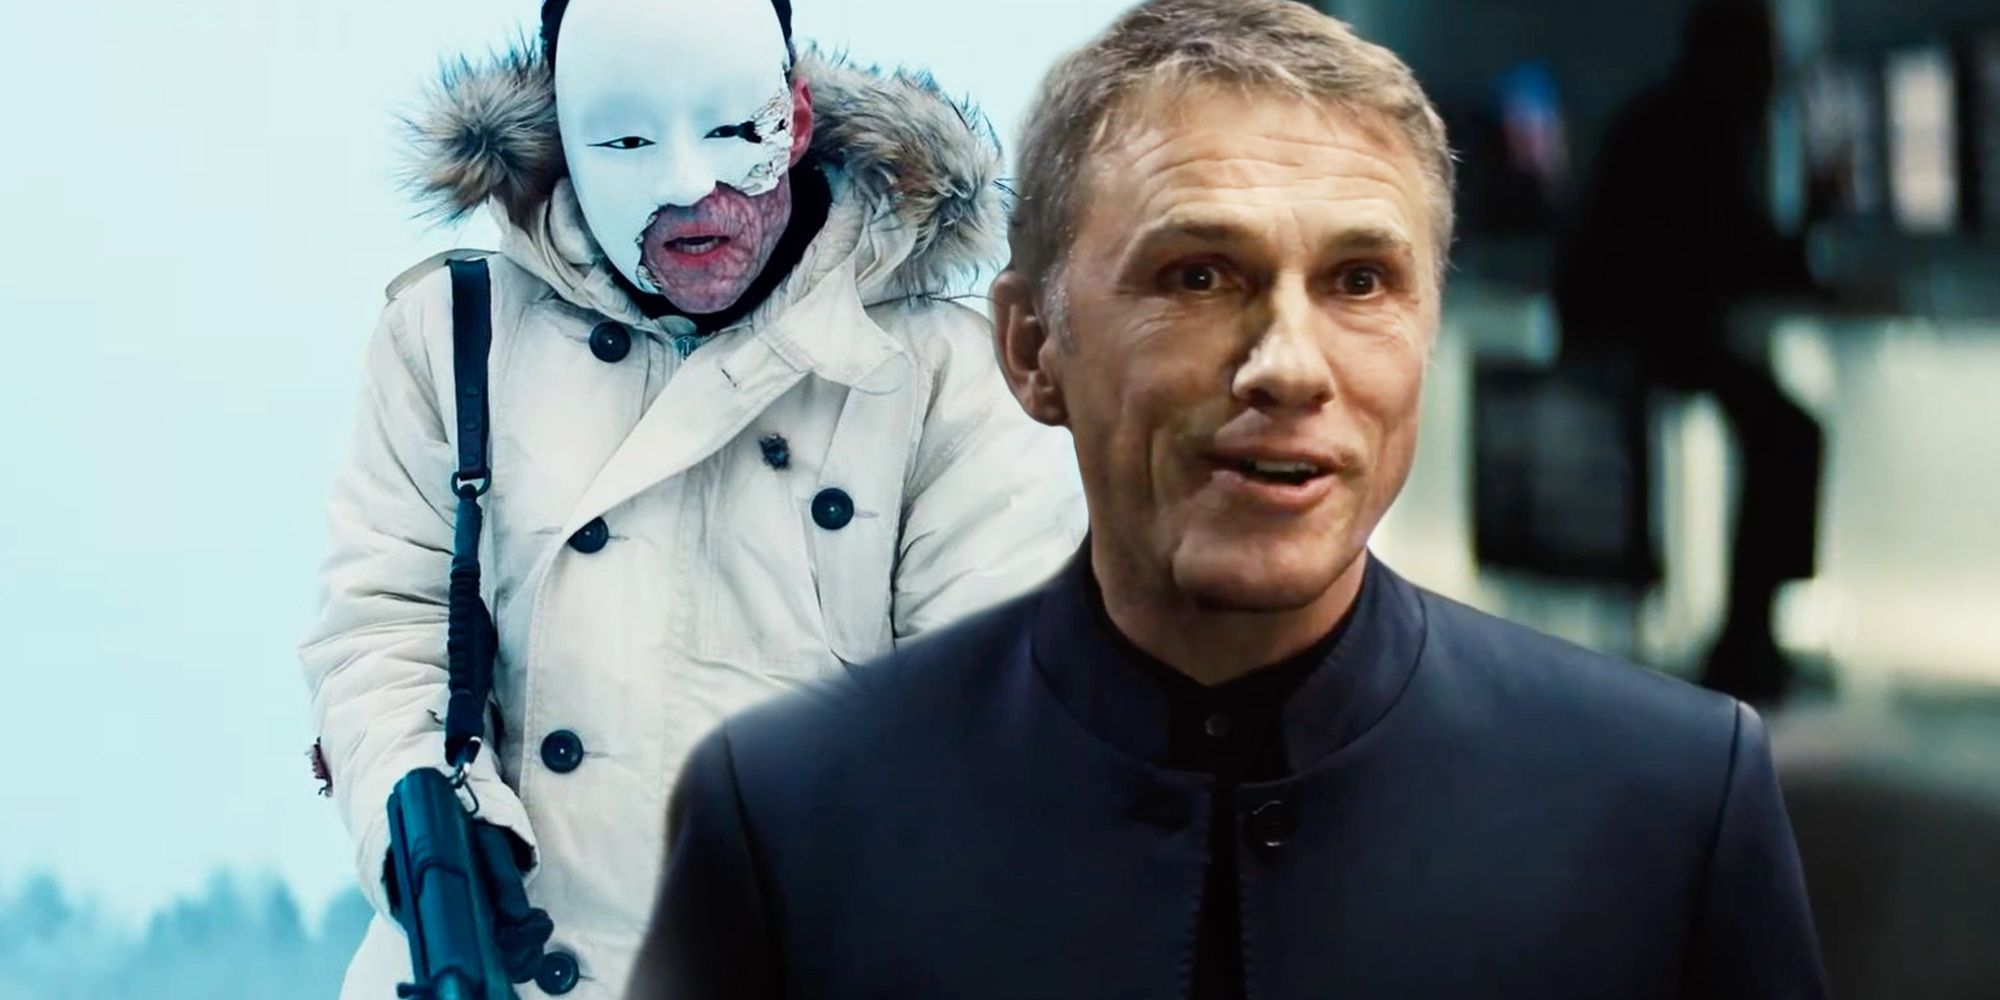 No time to die: Safin's plan was needed Blofeld